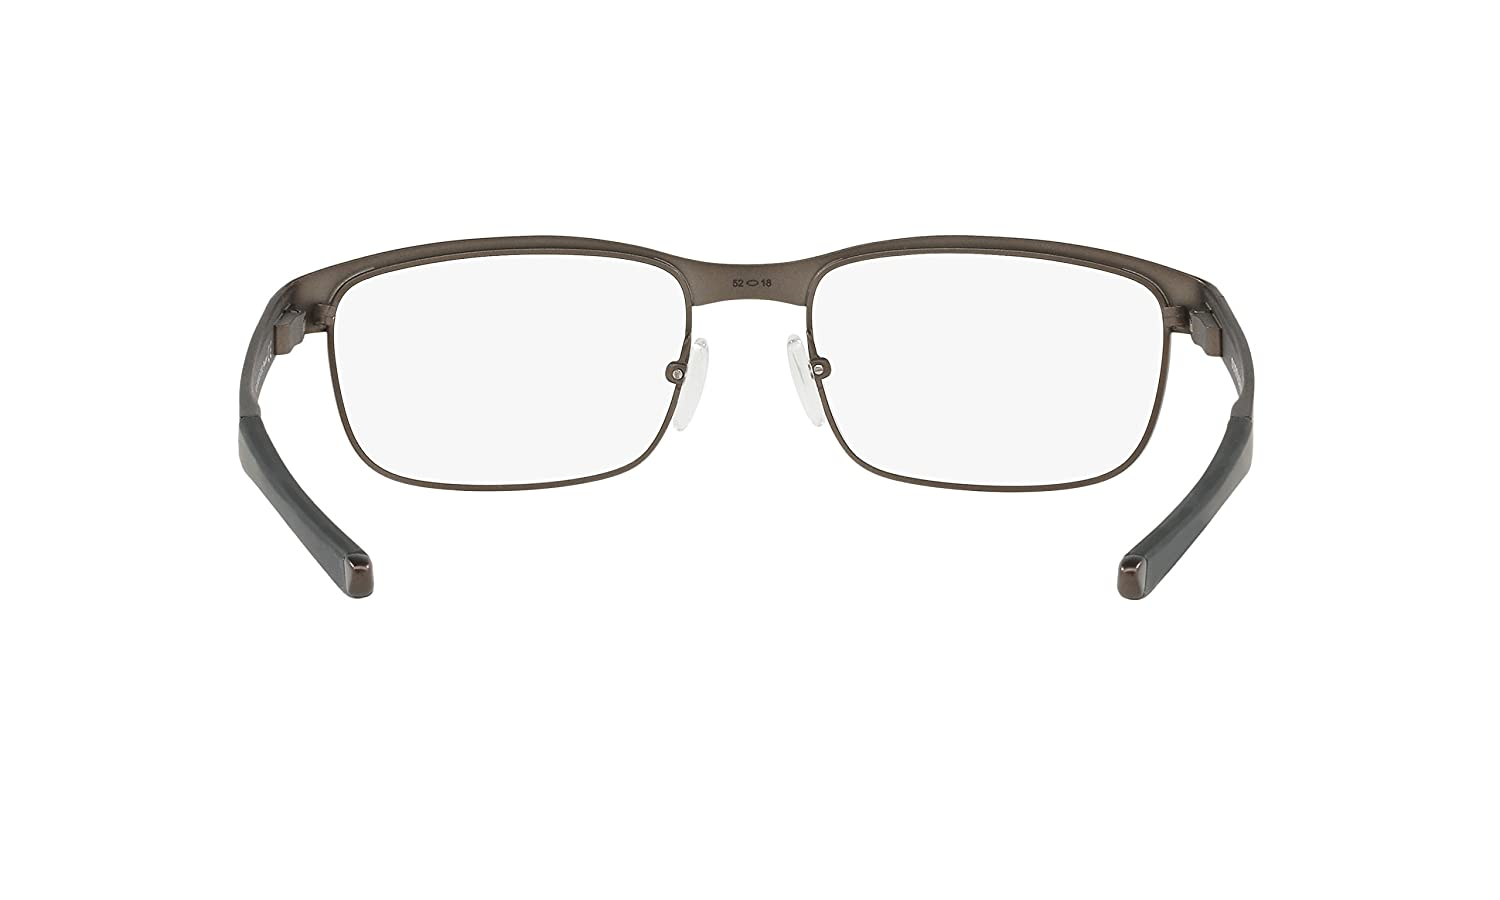 c58be3ec9c OAKLEY OX5132 - 513202 SURFACE PLATE Eyeglasses 54mm at Amazon Men s  Clothing store